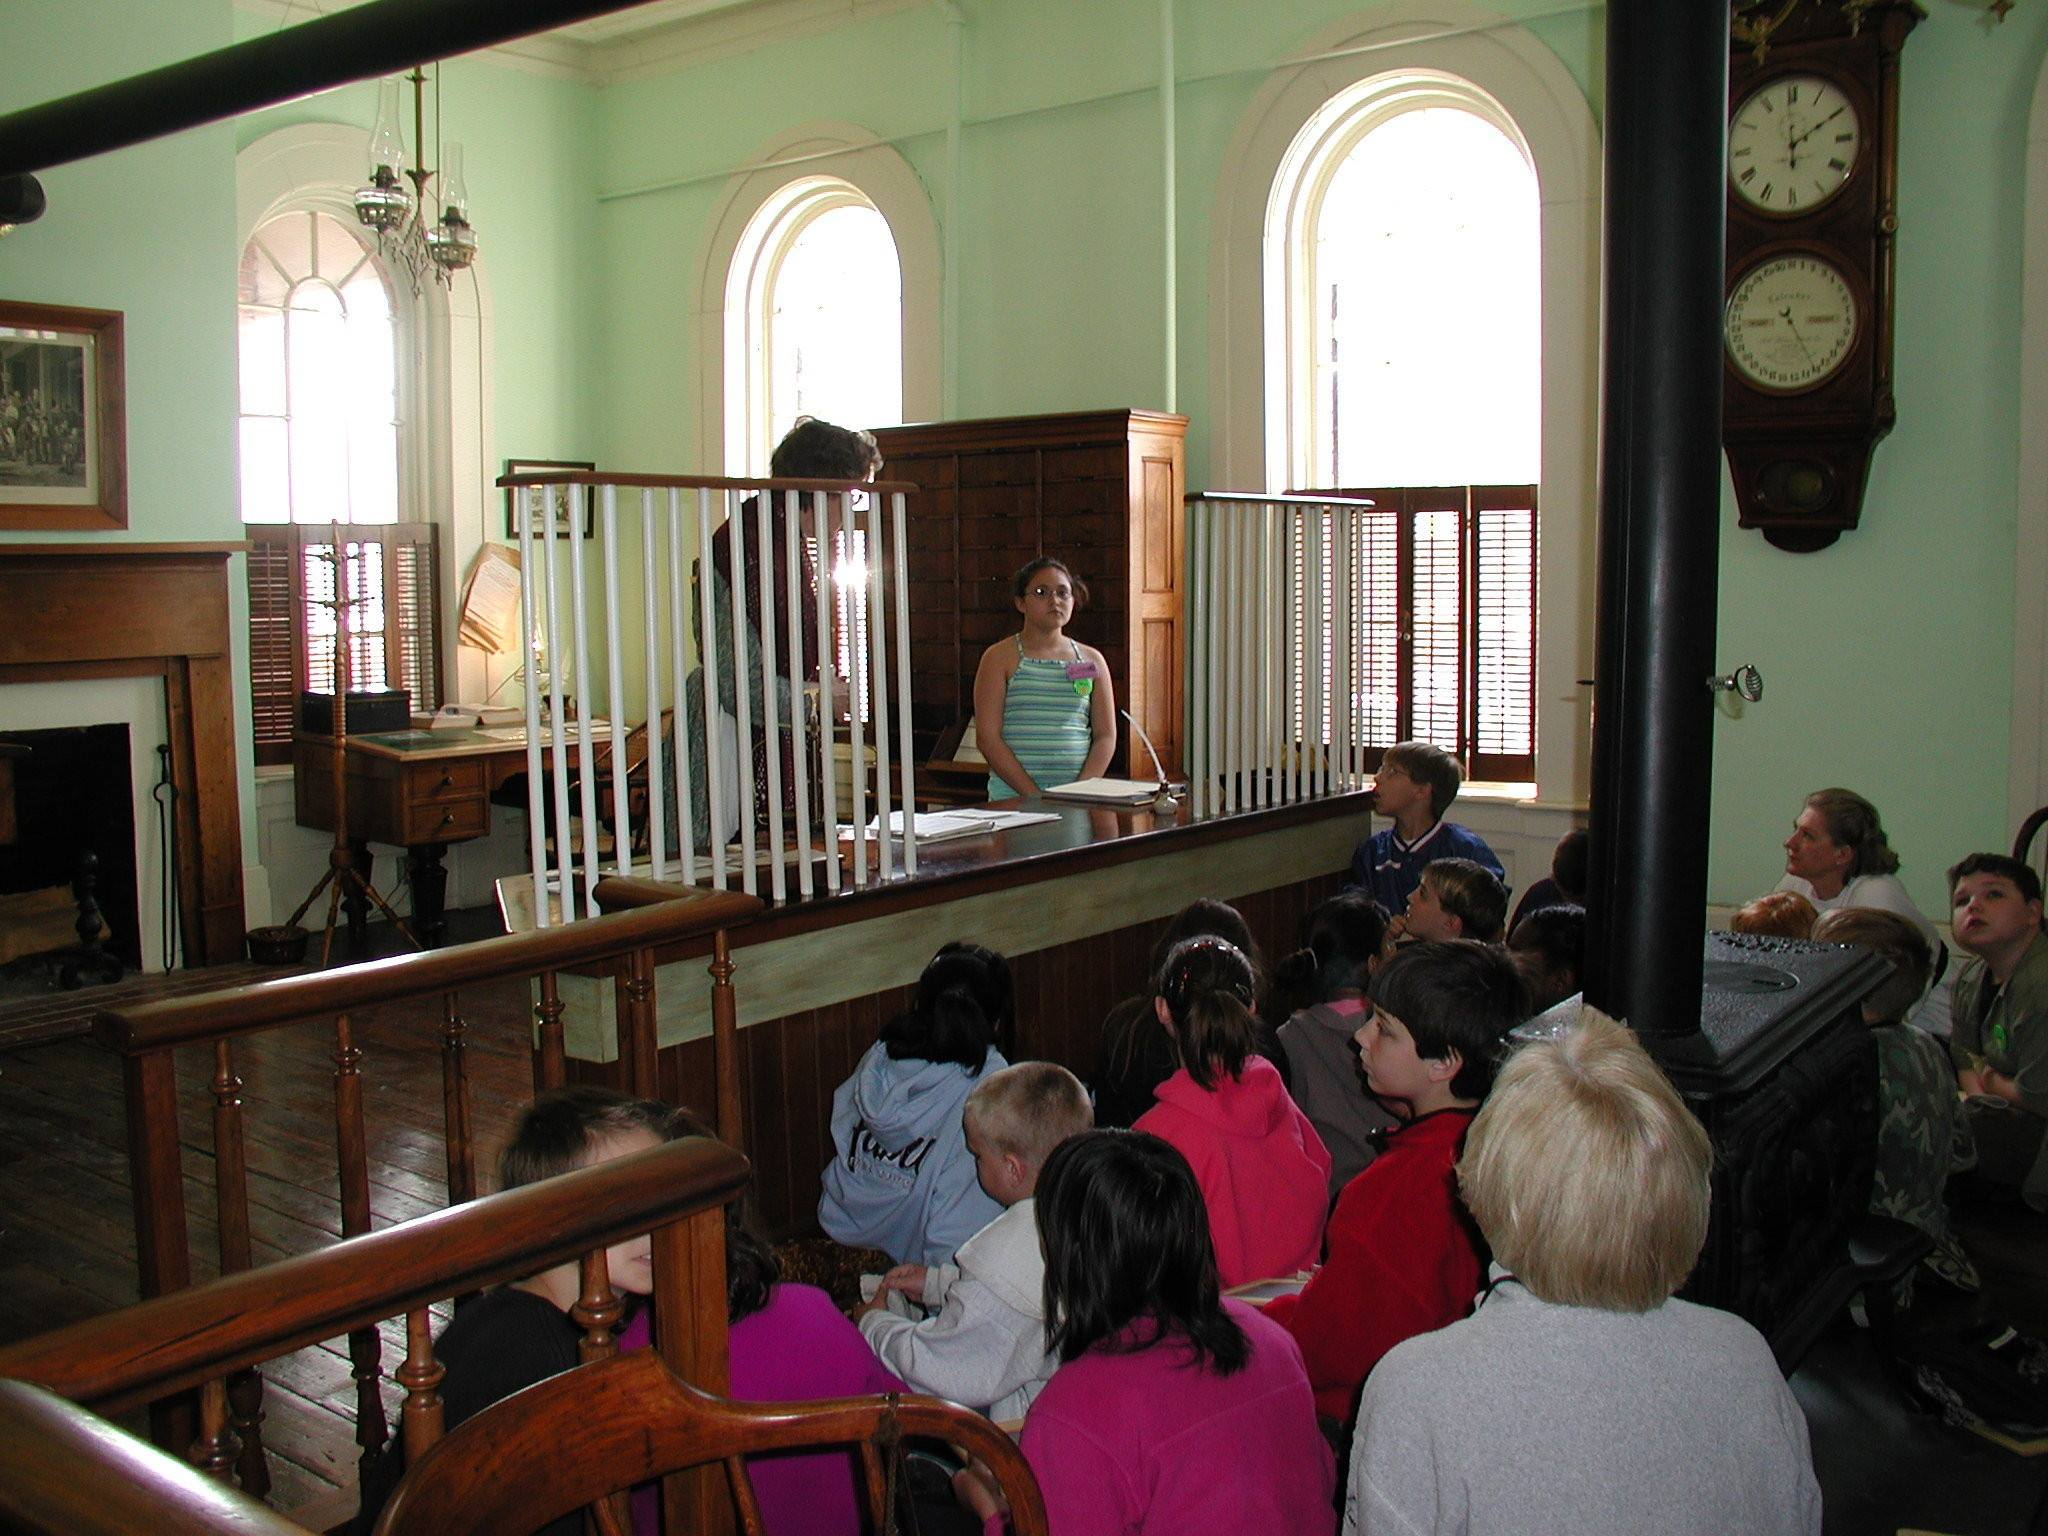 A school group on a tour of the museum